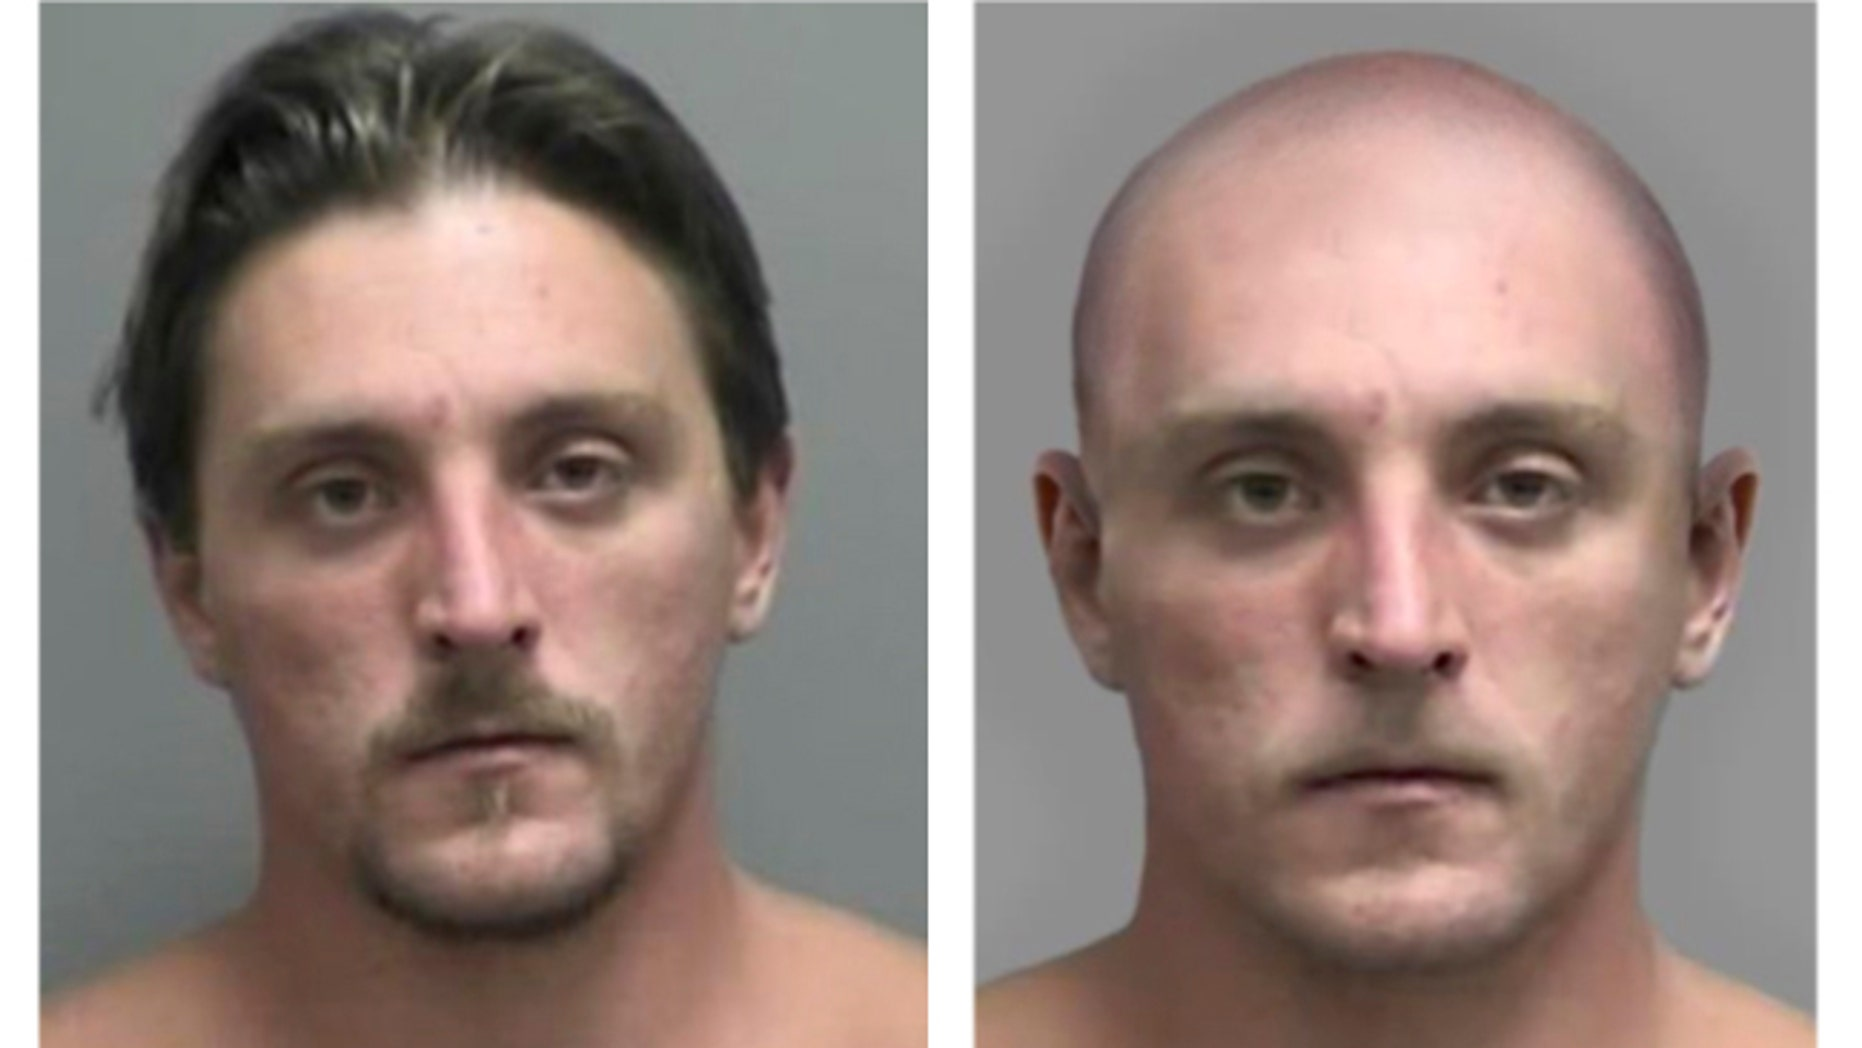 This combo made Tuesday, April 11, 2017, from images provided by the FBI shows Joseph Jakubowski's mug shot at left and an altered image the FBI made to show Jakubowski with his head and facial hair shaved off. Authorities released the modified mug shot of Jakubowski, because the FBI believes he may have altered his appearance. More than 150 state and federal law enforcement officers have been searching for Jakubowski since April 4, when they believe he took 18 firearms from a gun store in Janesville in southwestern Wisconsin. (FBI via AP)